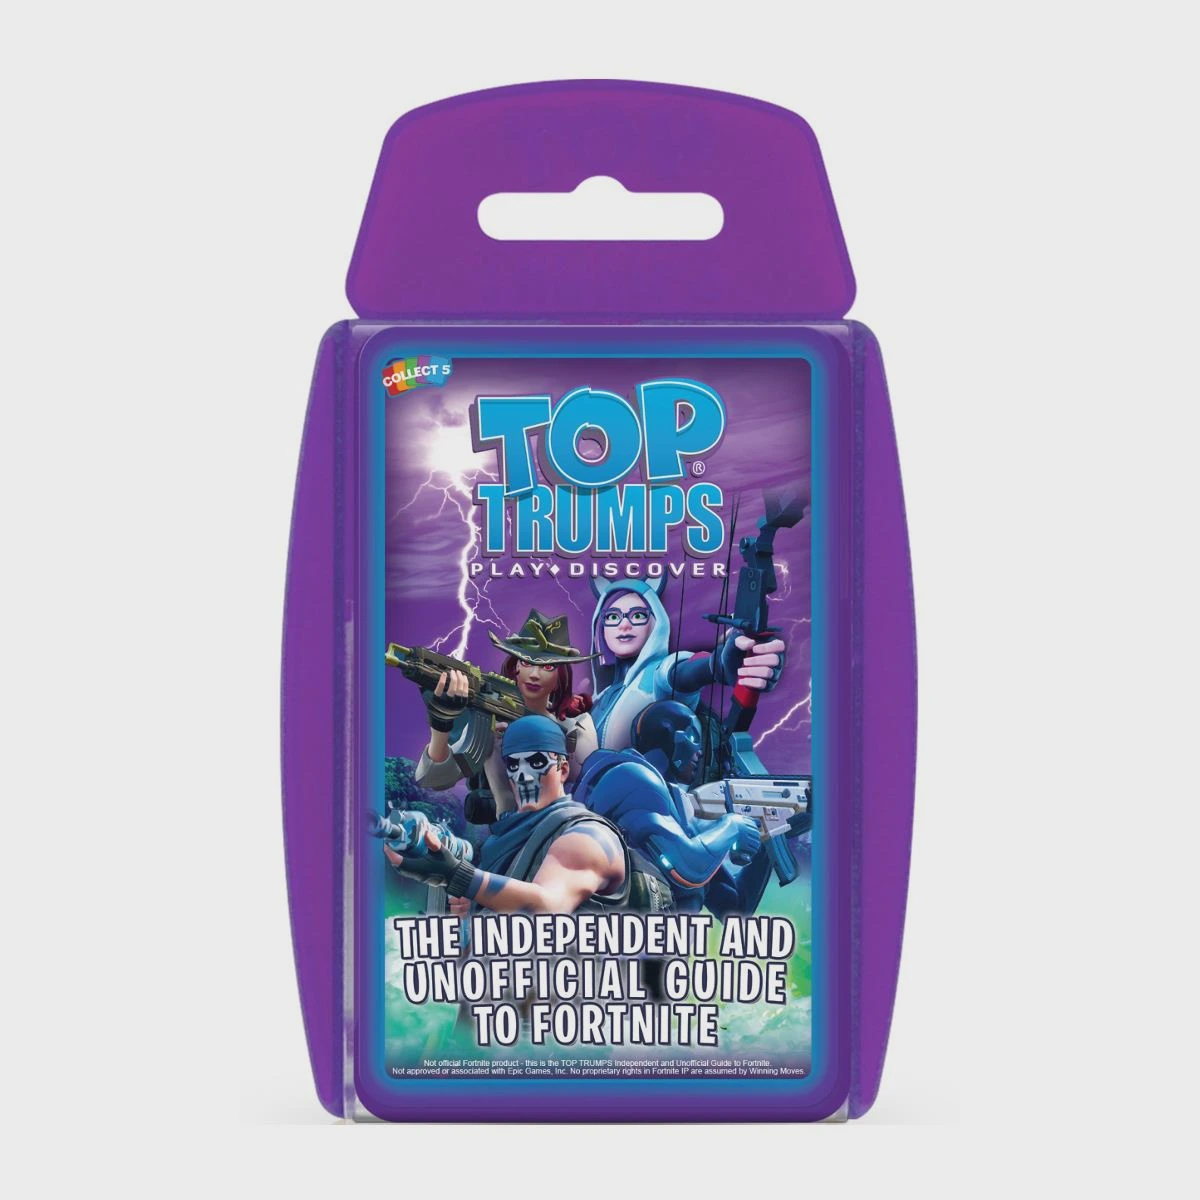 TOP TRUMPS INDEPENDENT AND UNOFFICIAL FORTNITE